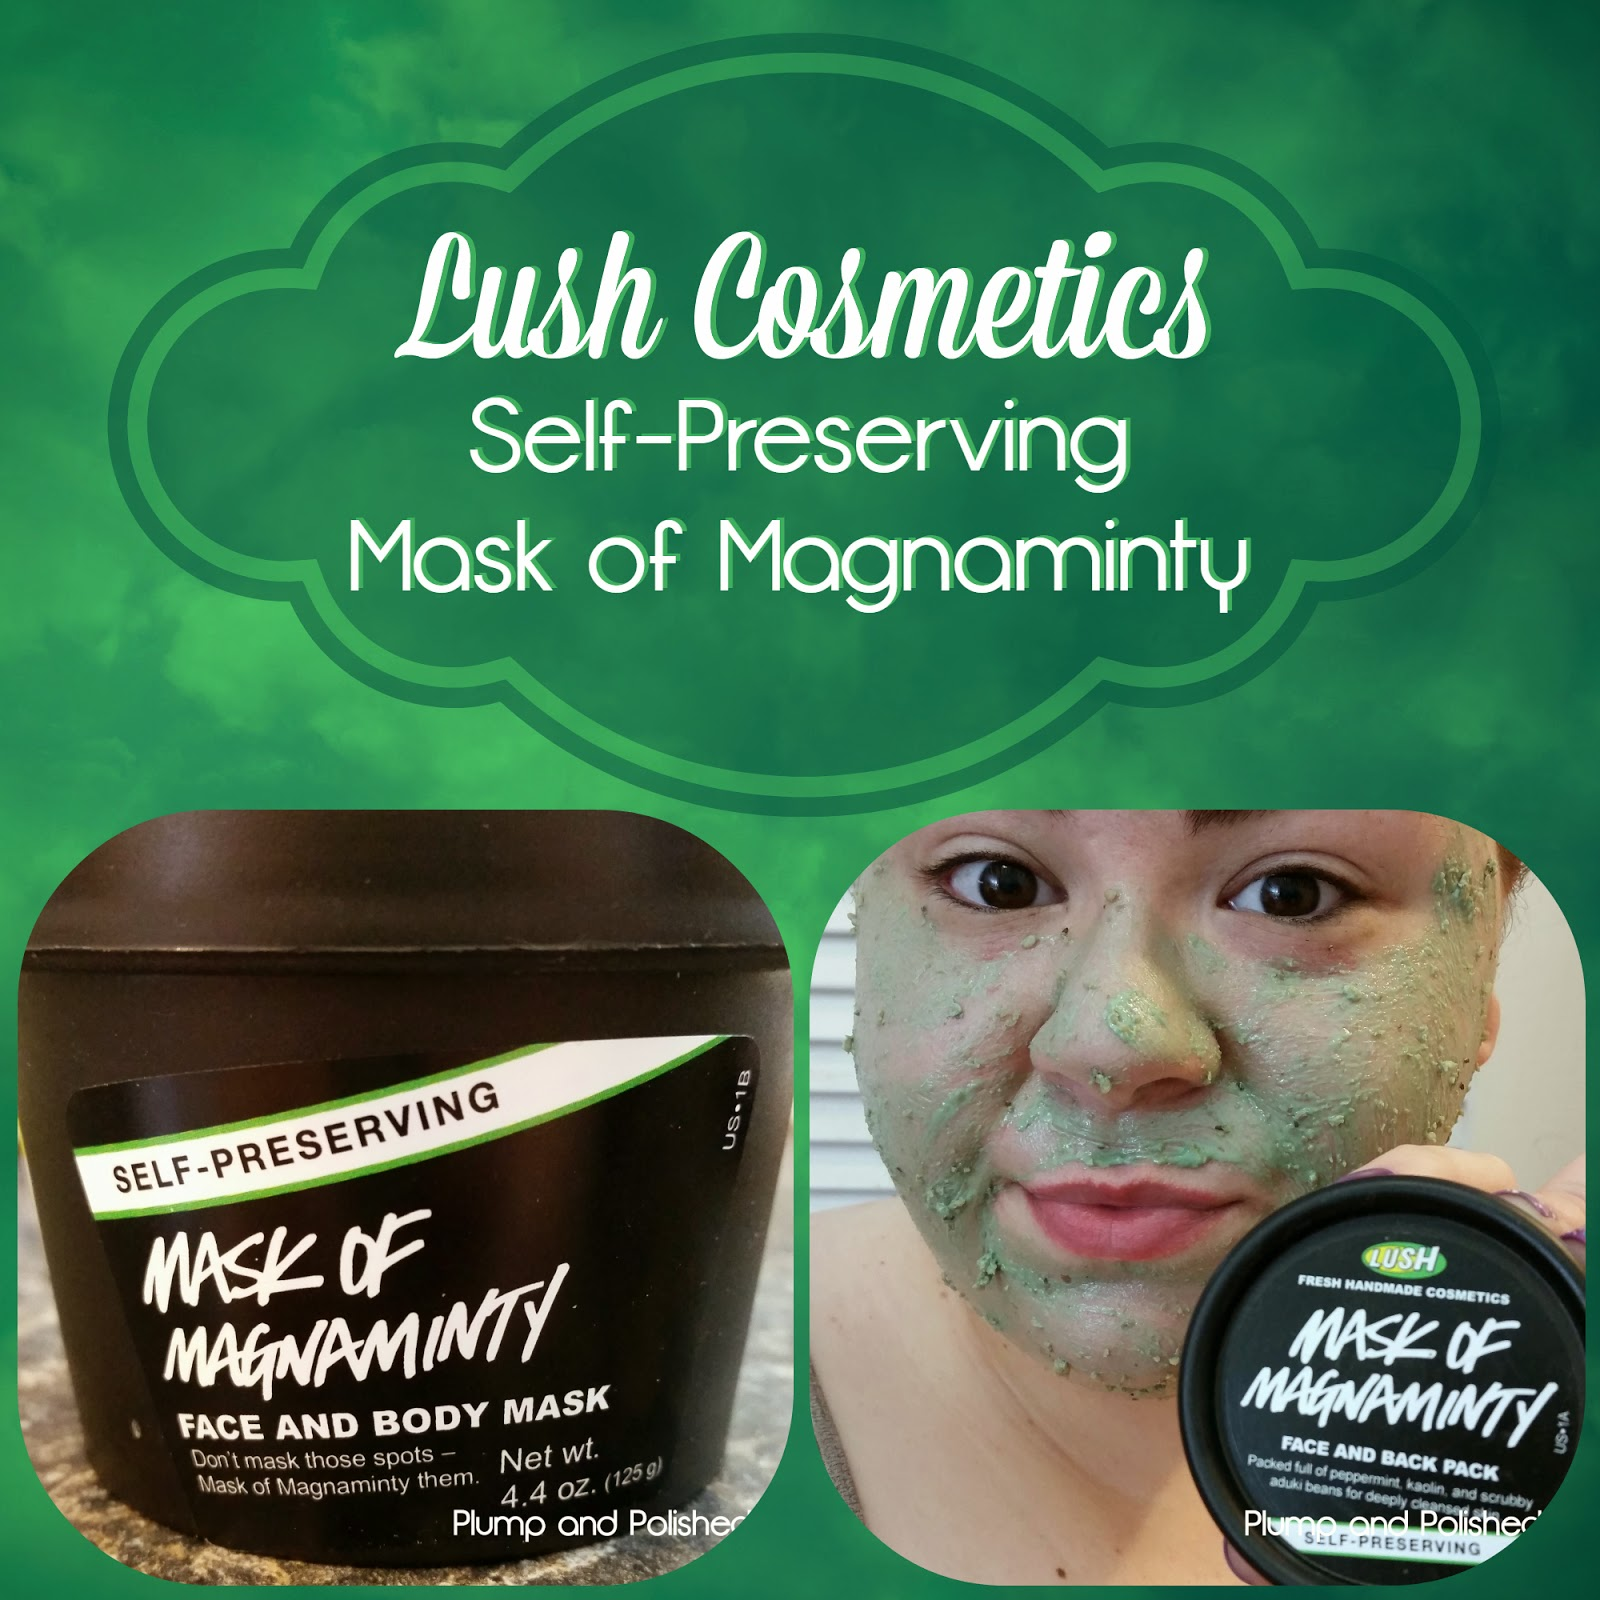 Lush Cosmetics - Self Preserving Mask of Magnaminty